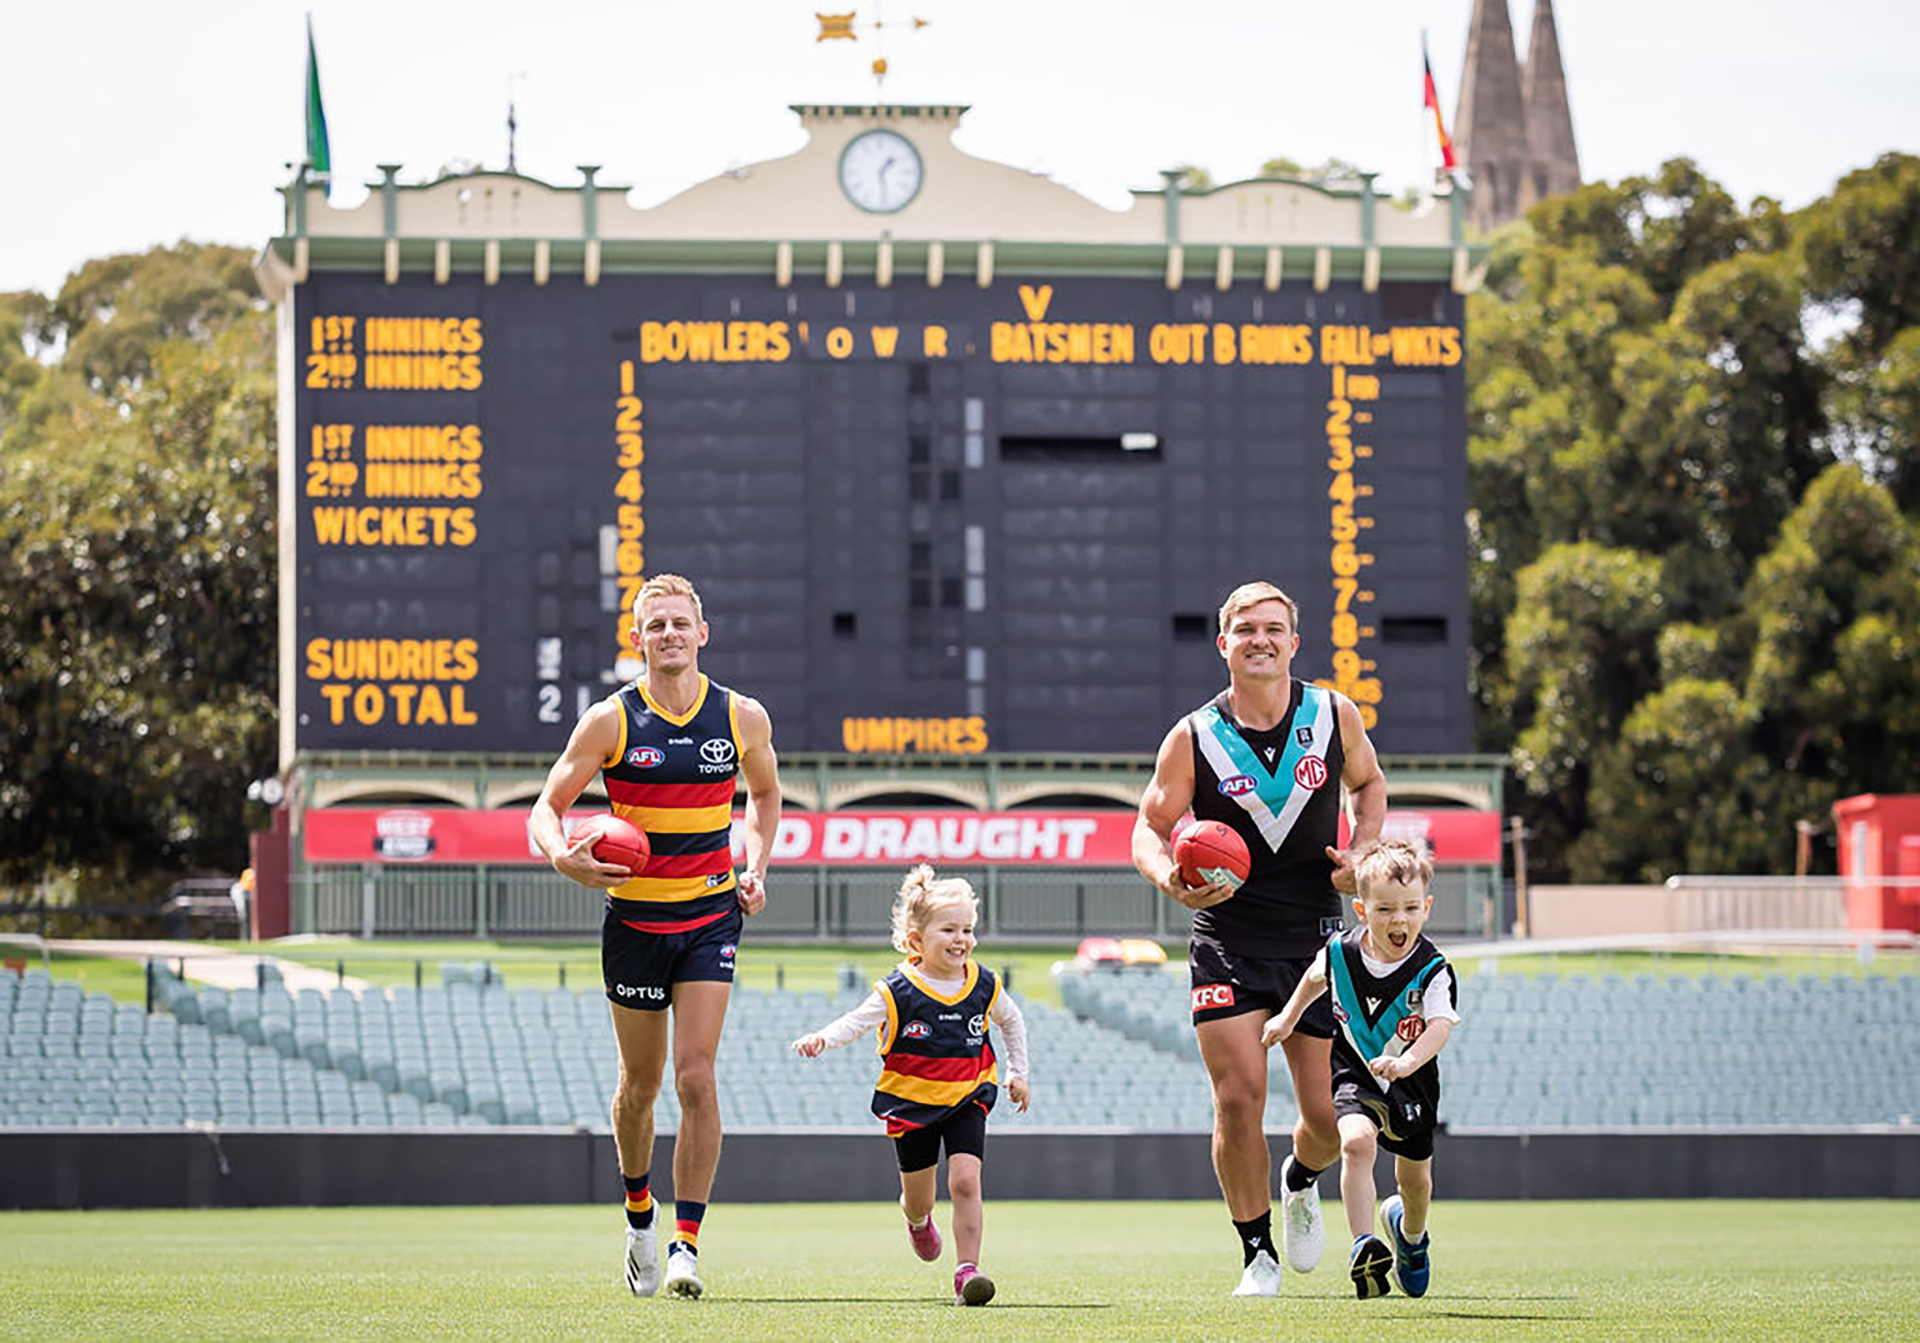 Fans, cheer loud! Footy at Adelaide Oval is back in a big way